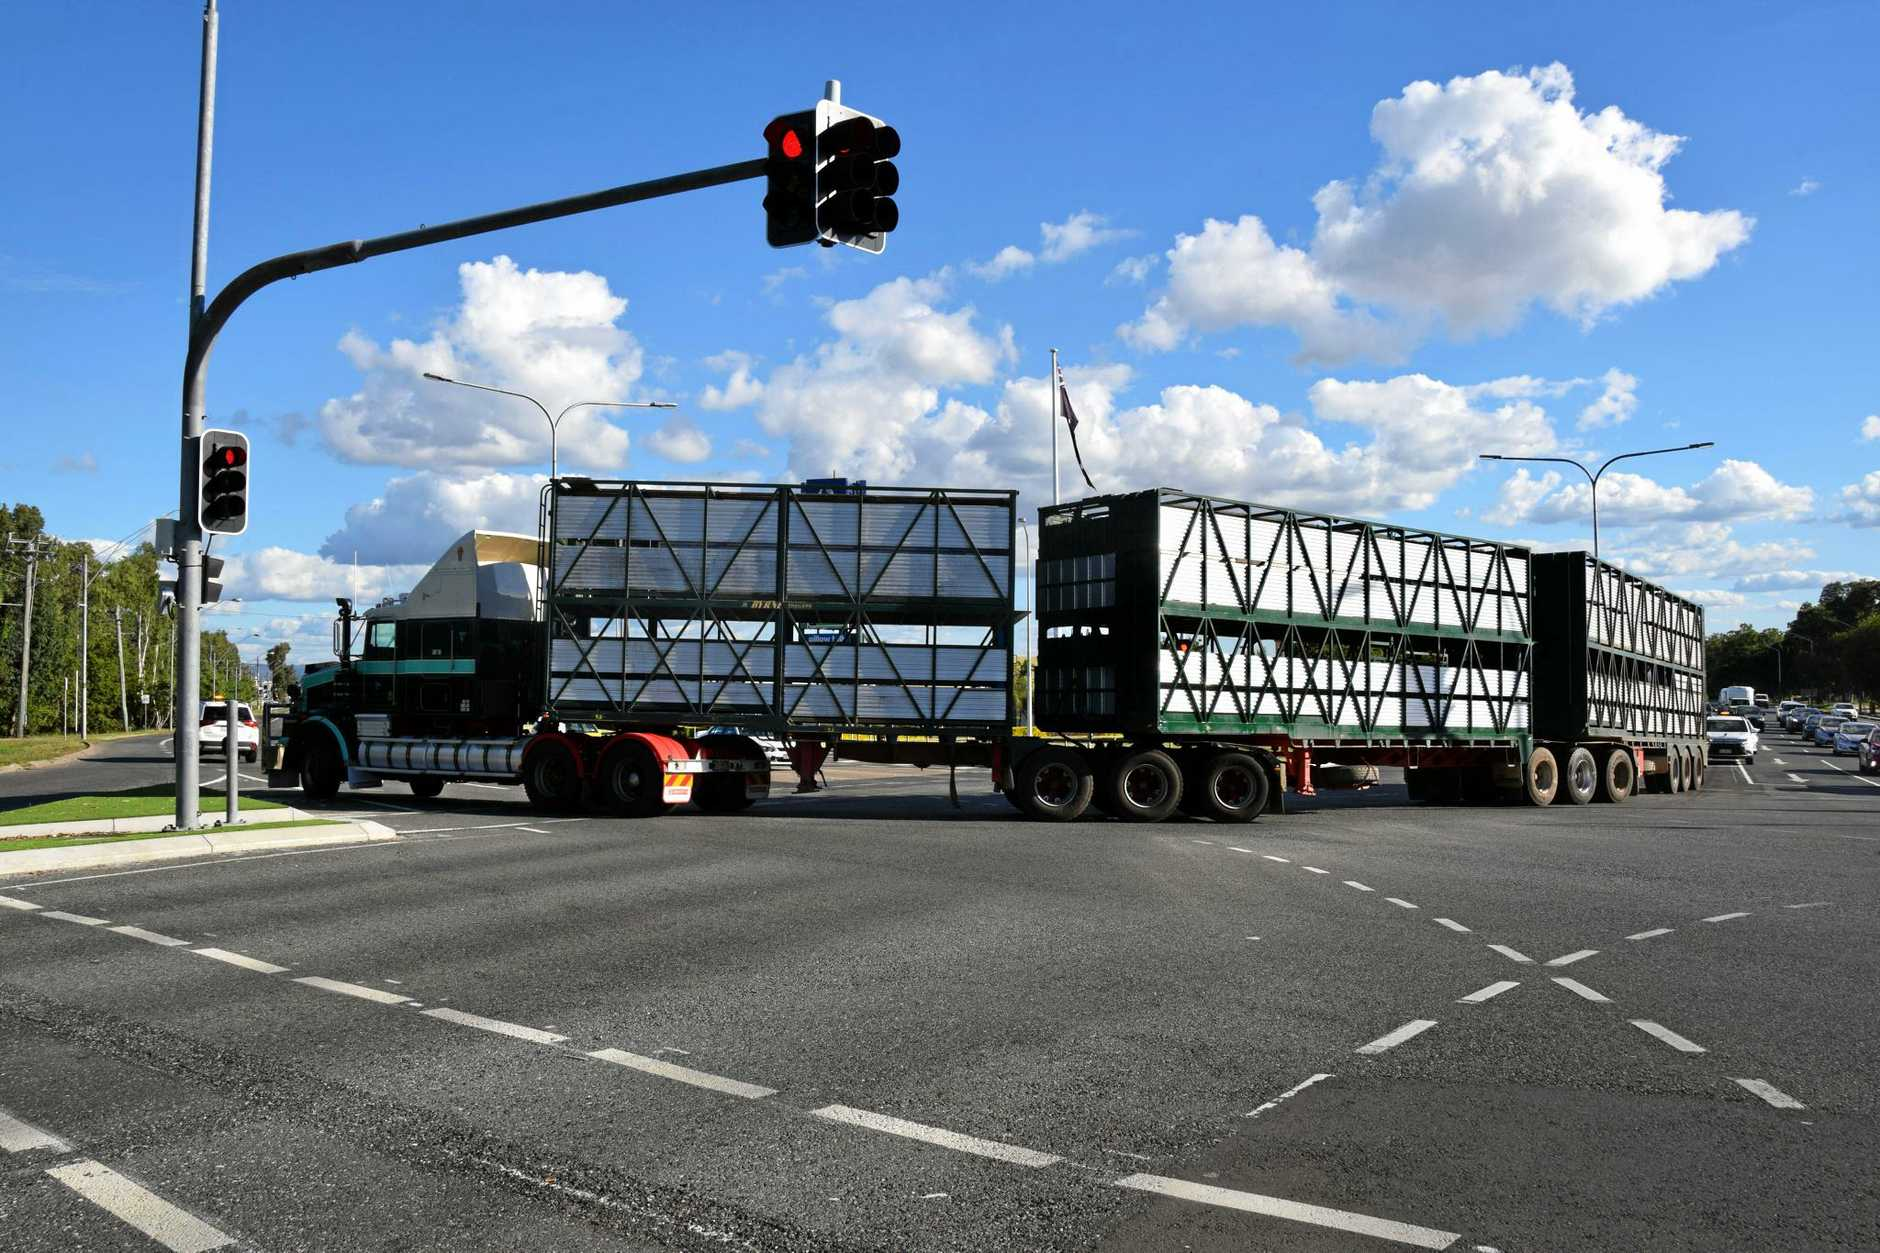 Rockhampton Regional Council have launched a bid to become a major player in Australia's freight and supply chain. PICTURED: Frasers Livestock Transport become the first to drive a three-trailer cattle train through Rockhampton on the new stock route.